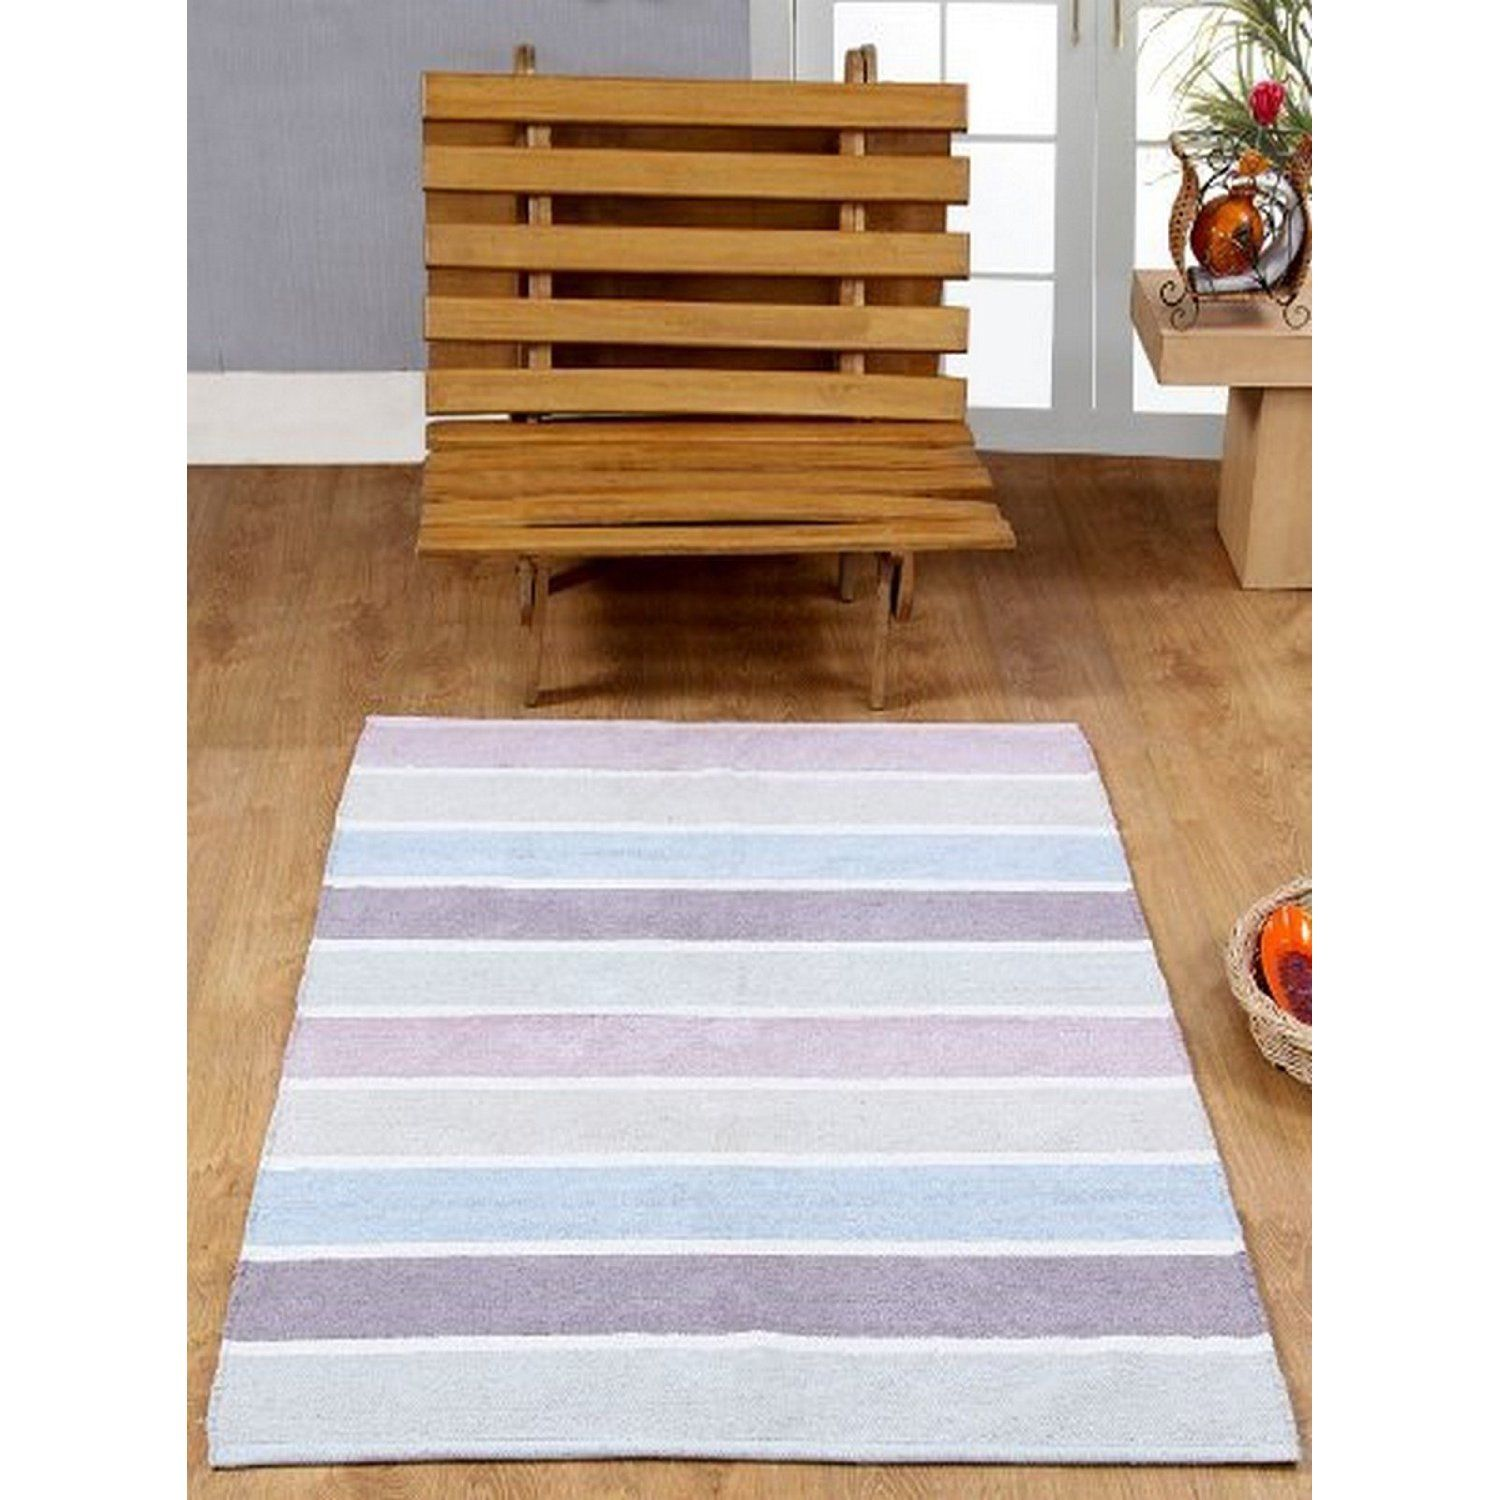 Homescapes 100 Cotton Chenille Stripe Rug Blue Beige Purple Heather Grey Natural Stripes 60 X 100 Cm Washable At Home Kids Room Striped Rug Rugs Colorful Rugs